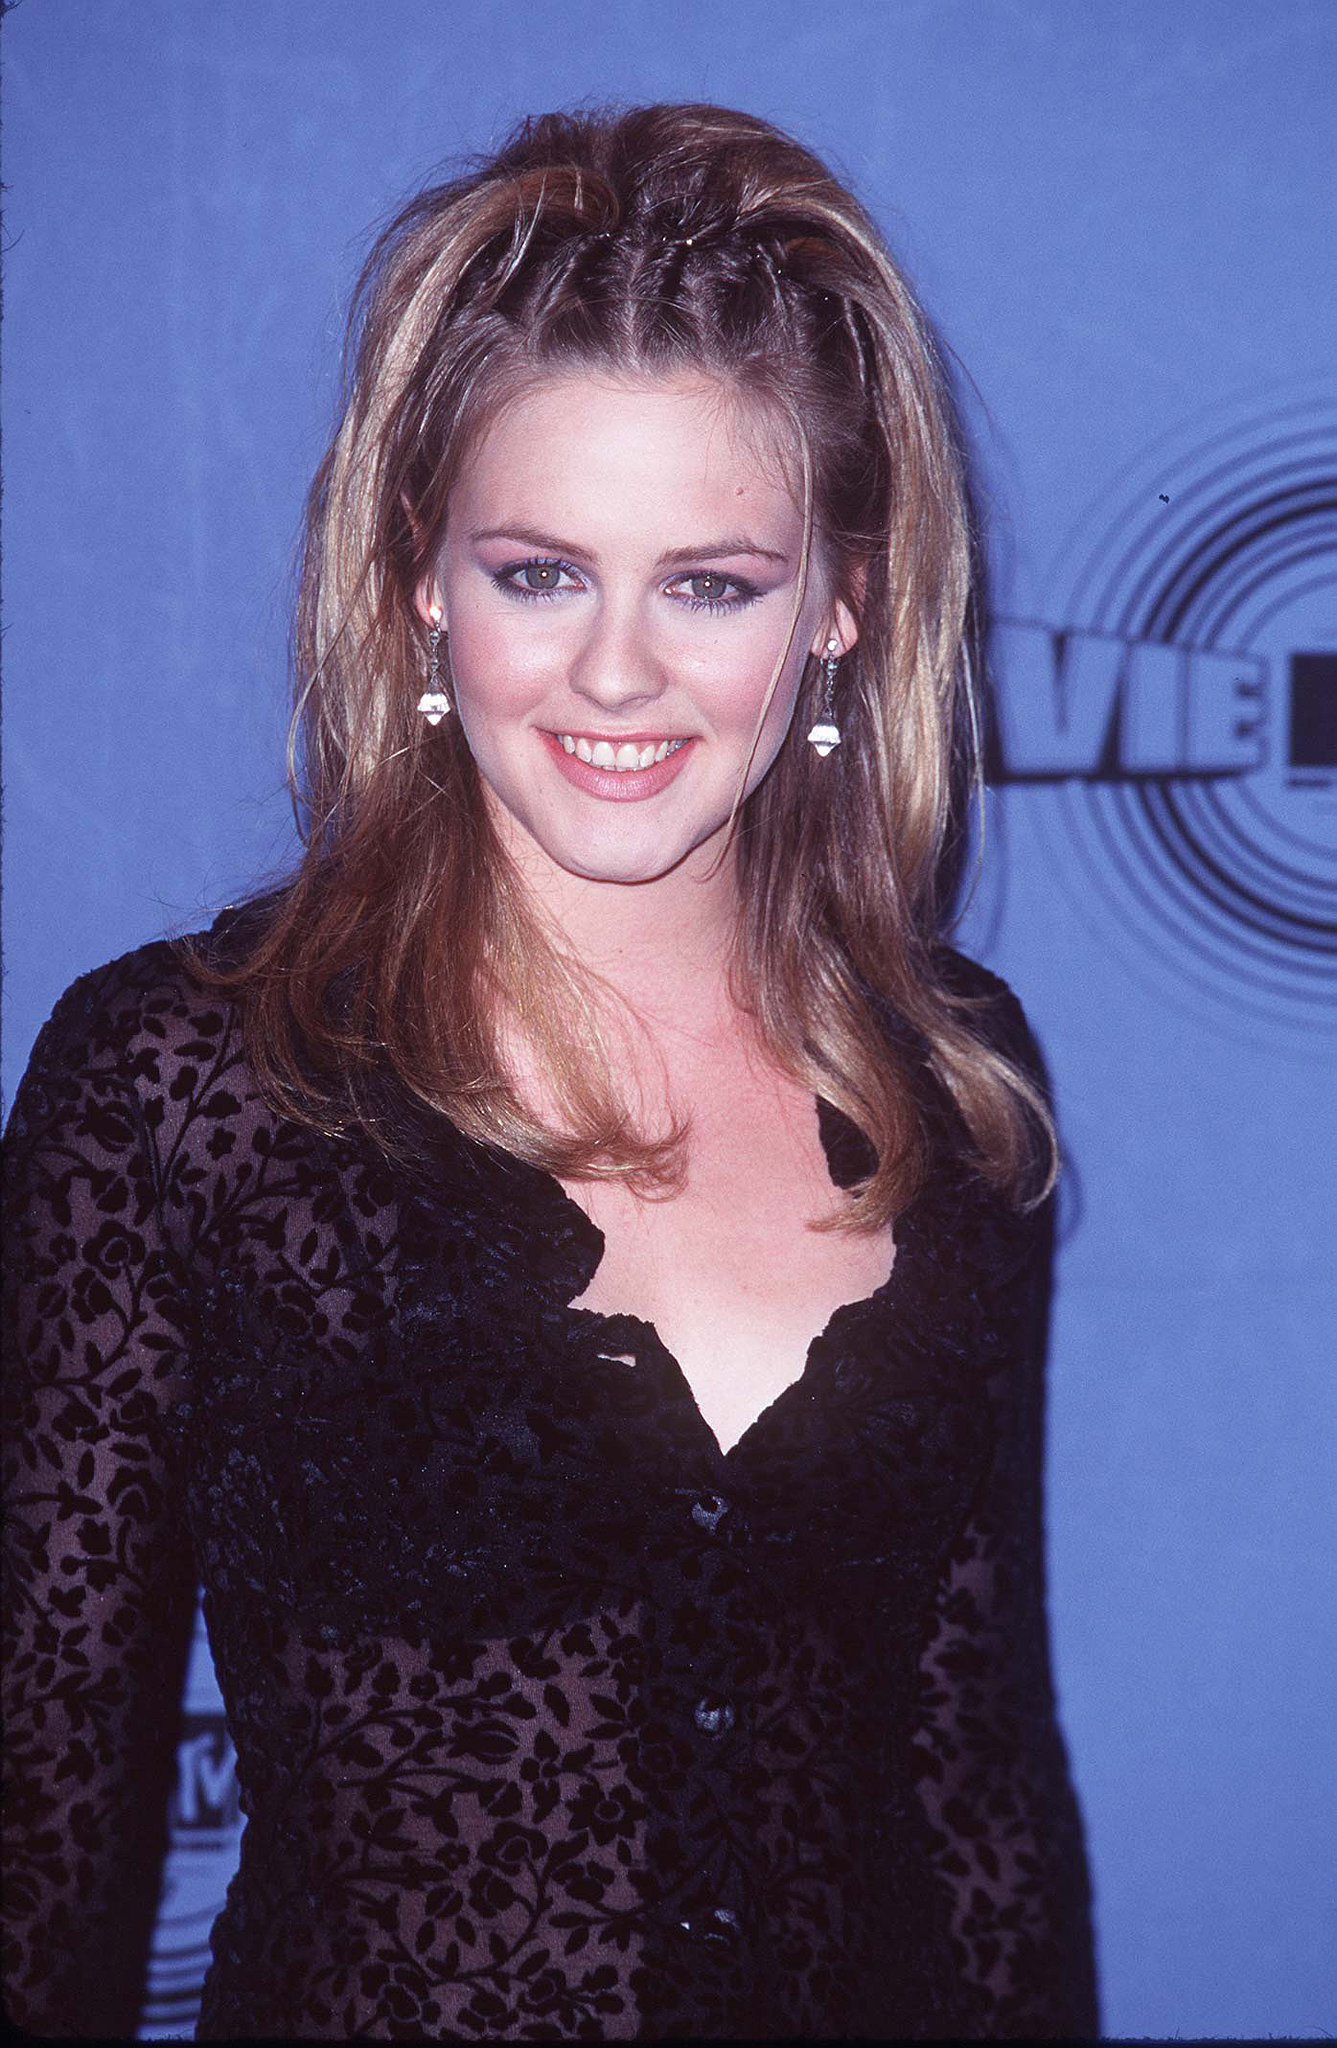 Alicia Silverstone twisted her hair back.